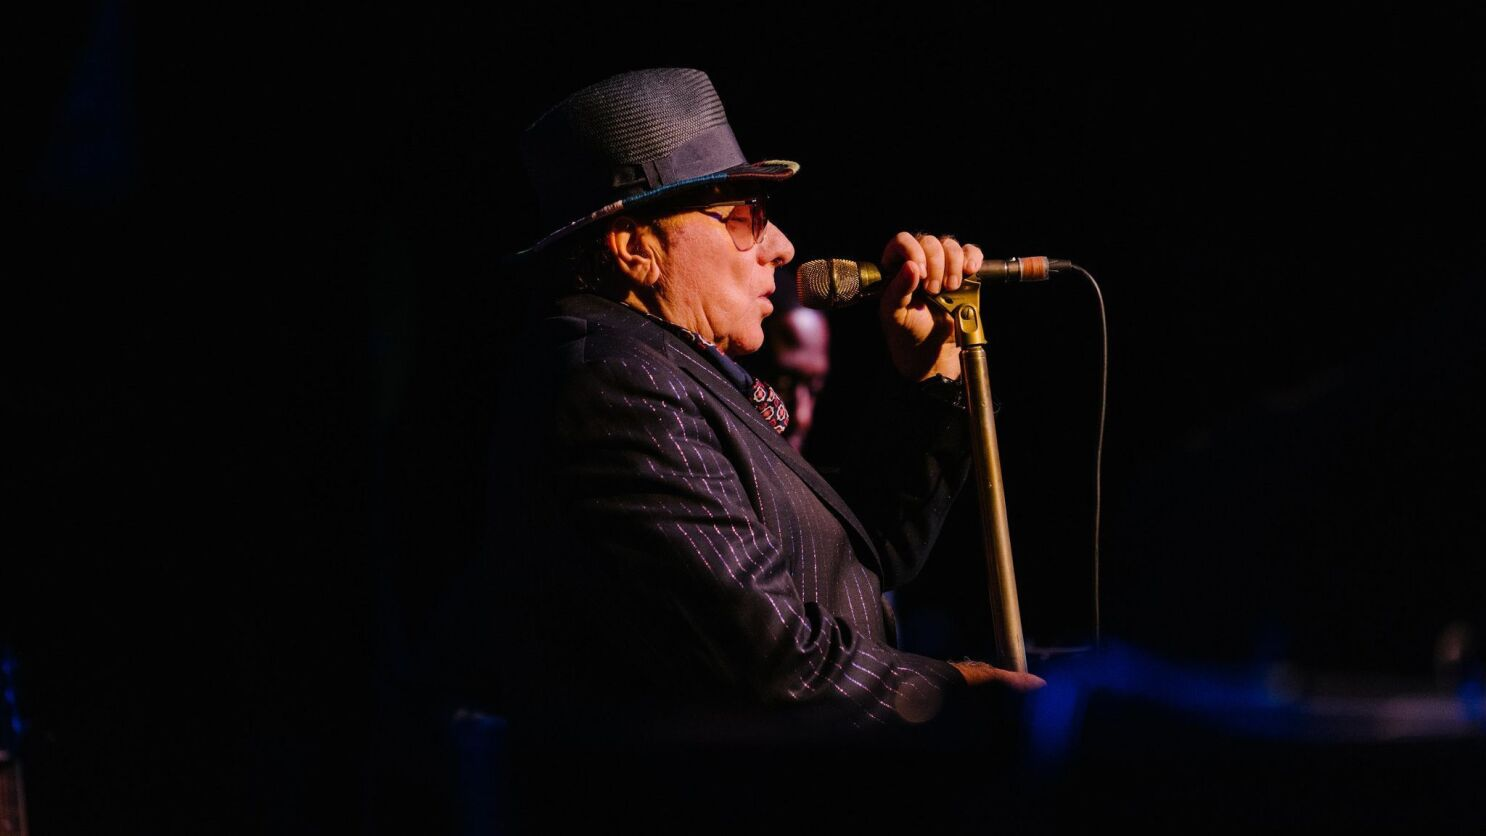 Van Morrison, on a marvelous night for a moondance, ebbs and flows at second San Diego concert in 46 years